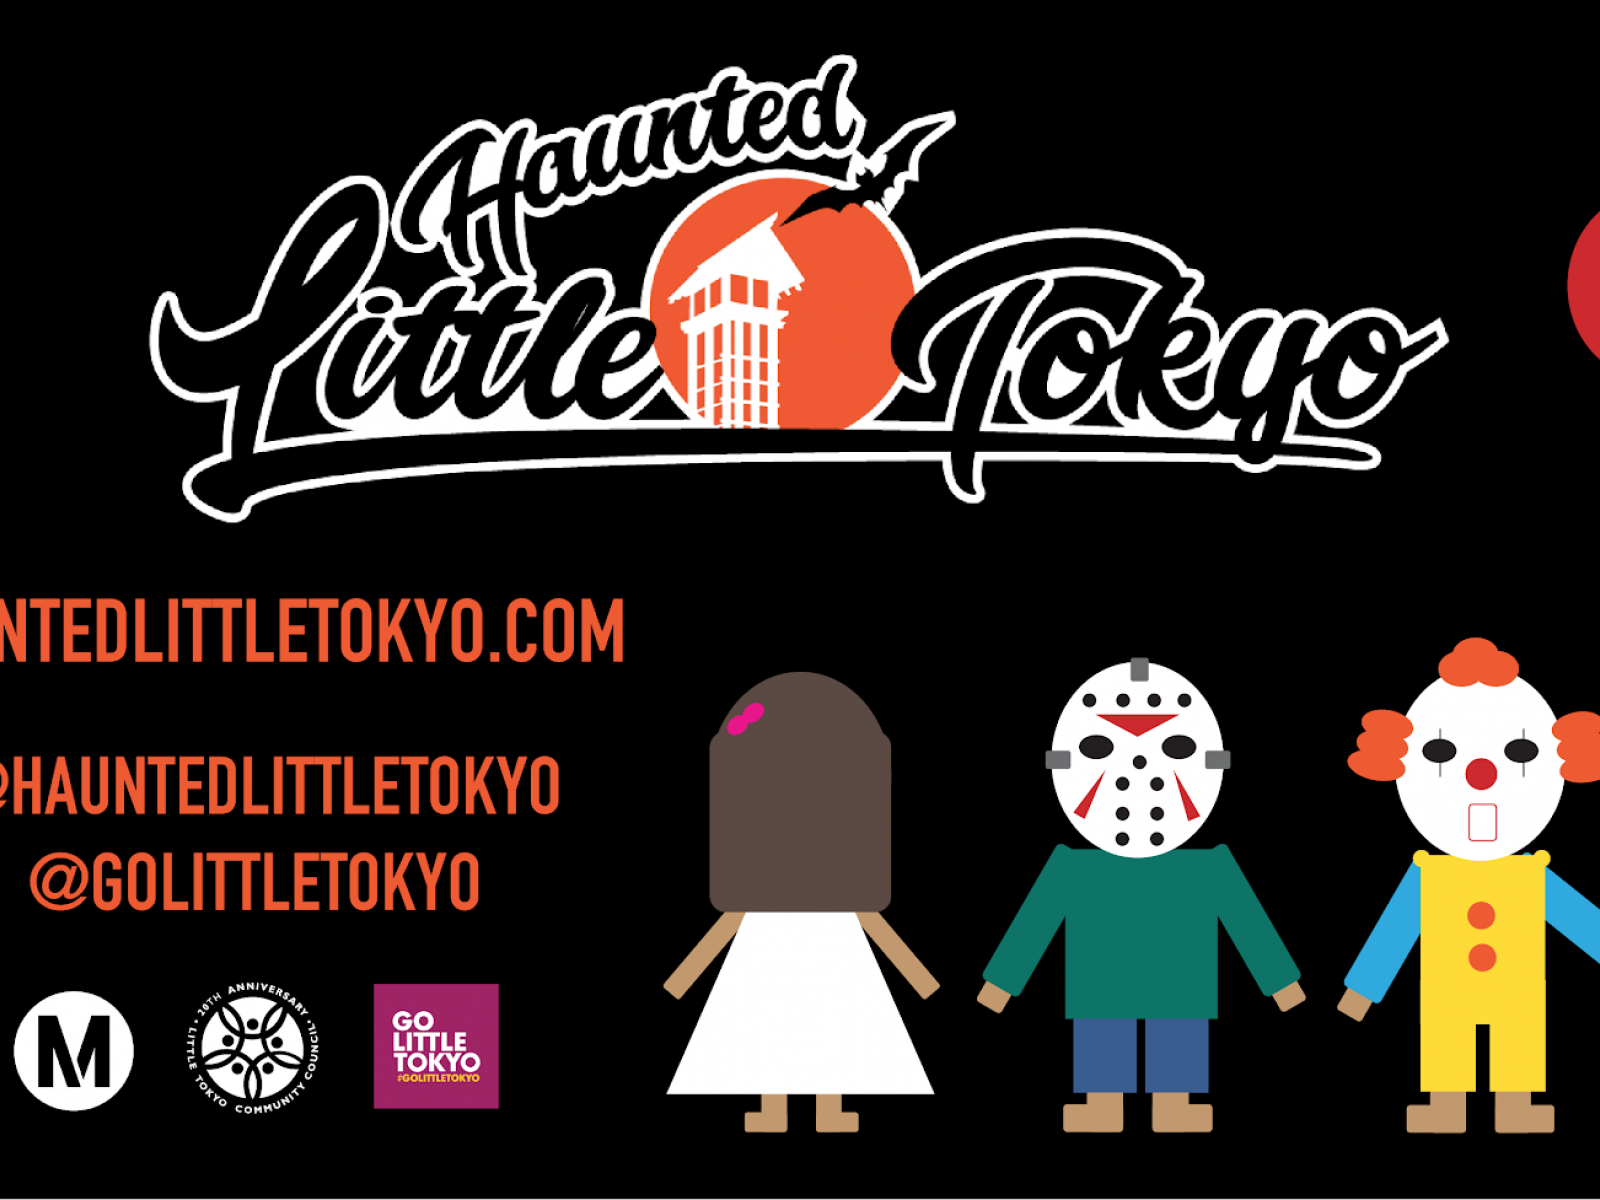 Main image for event titled 4th Annual Haunted Little Tokyo (OPENING DAY)